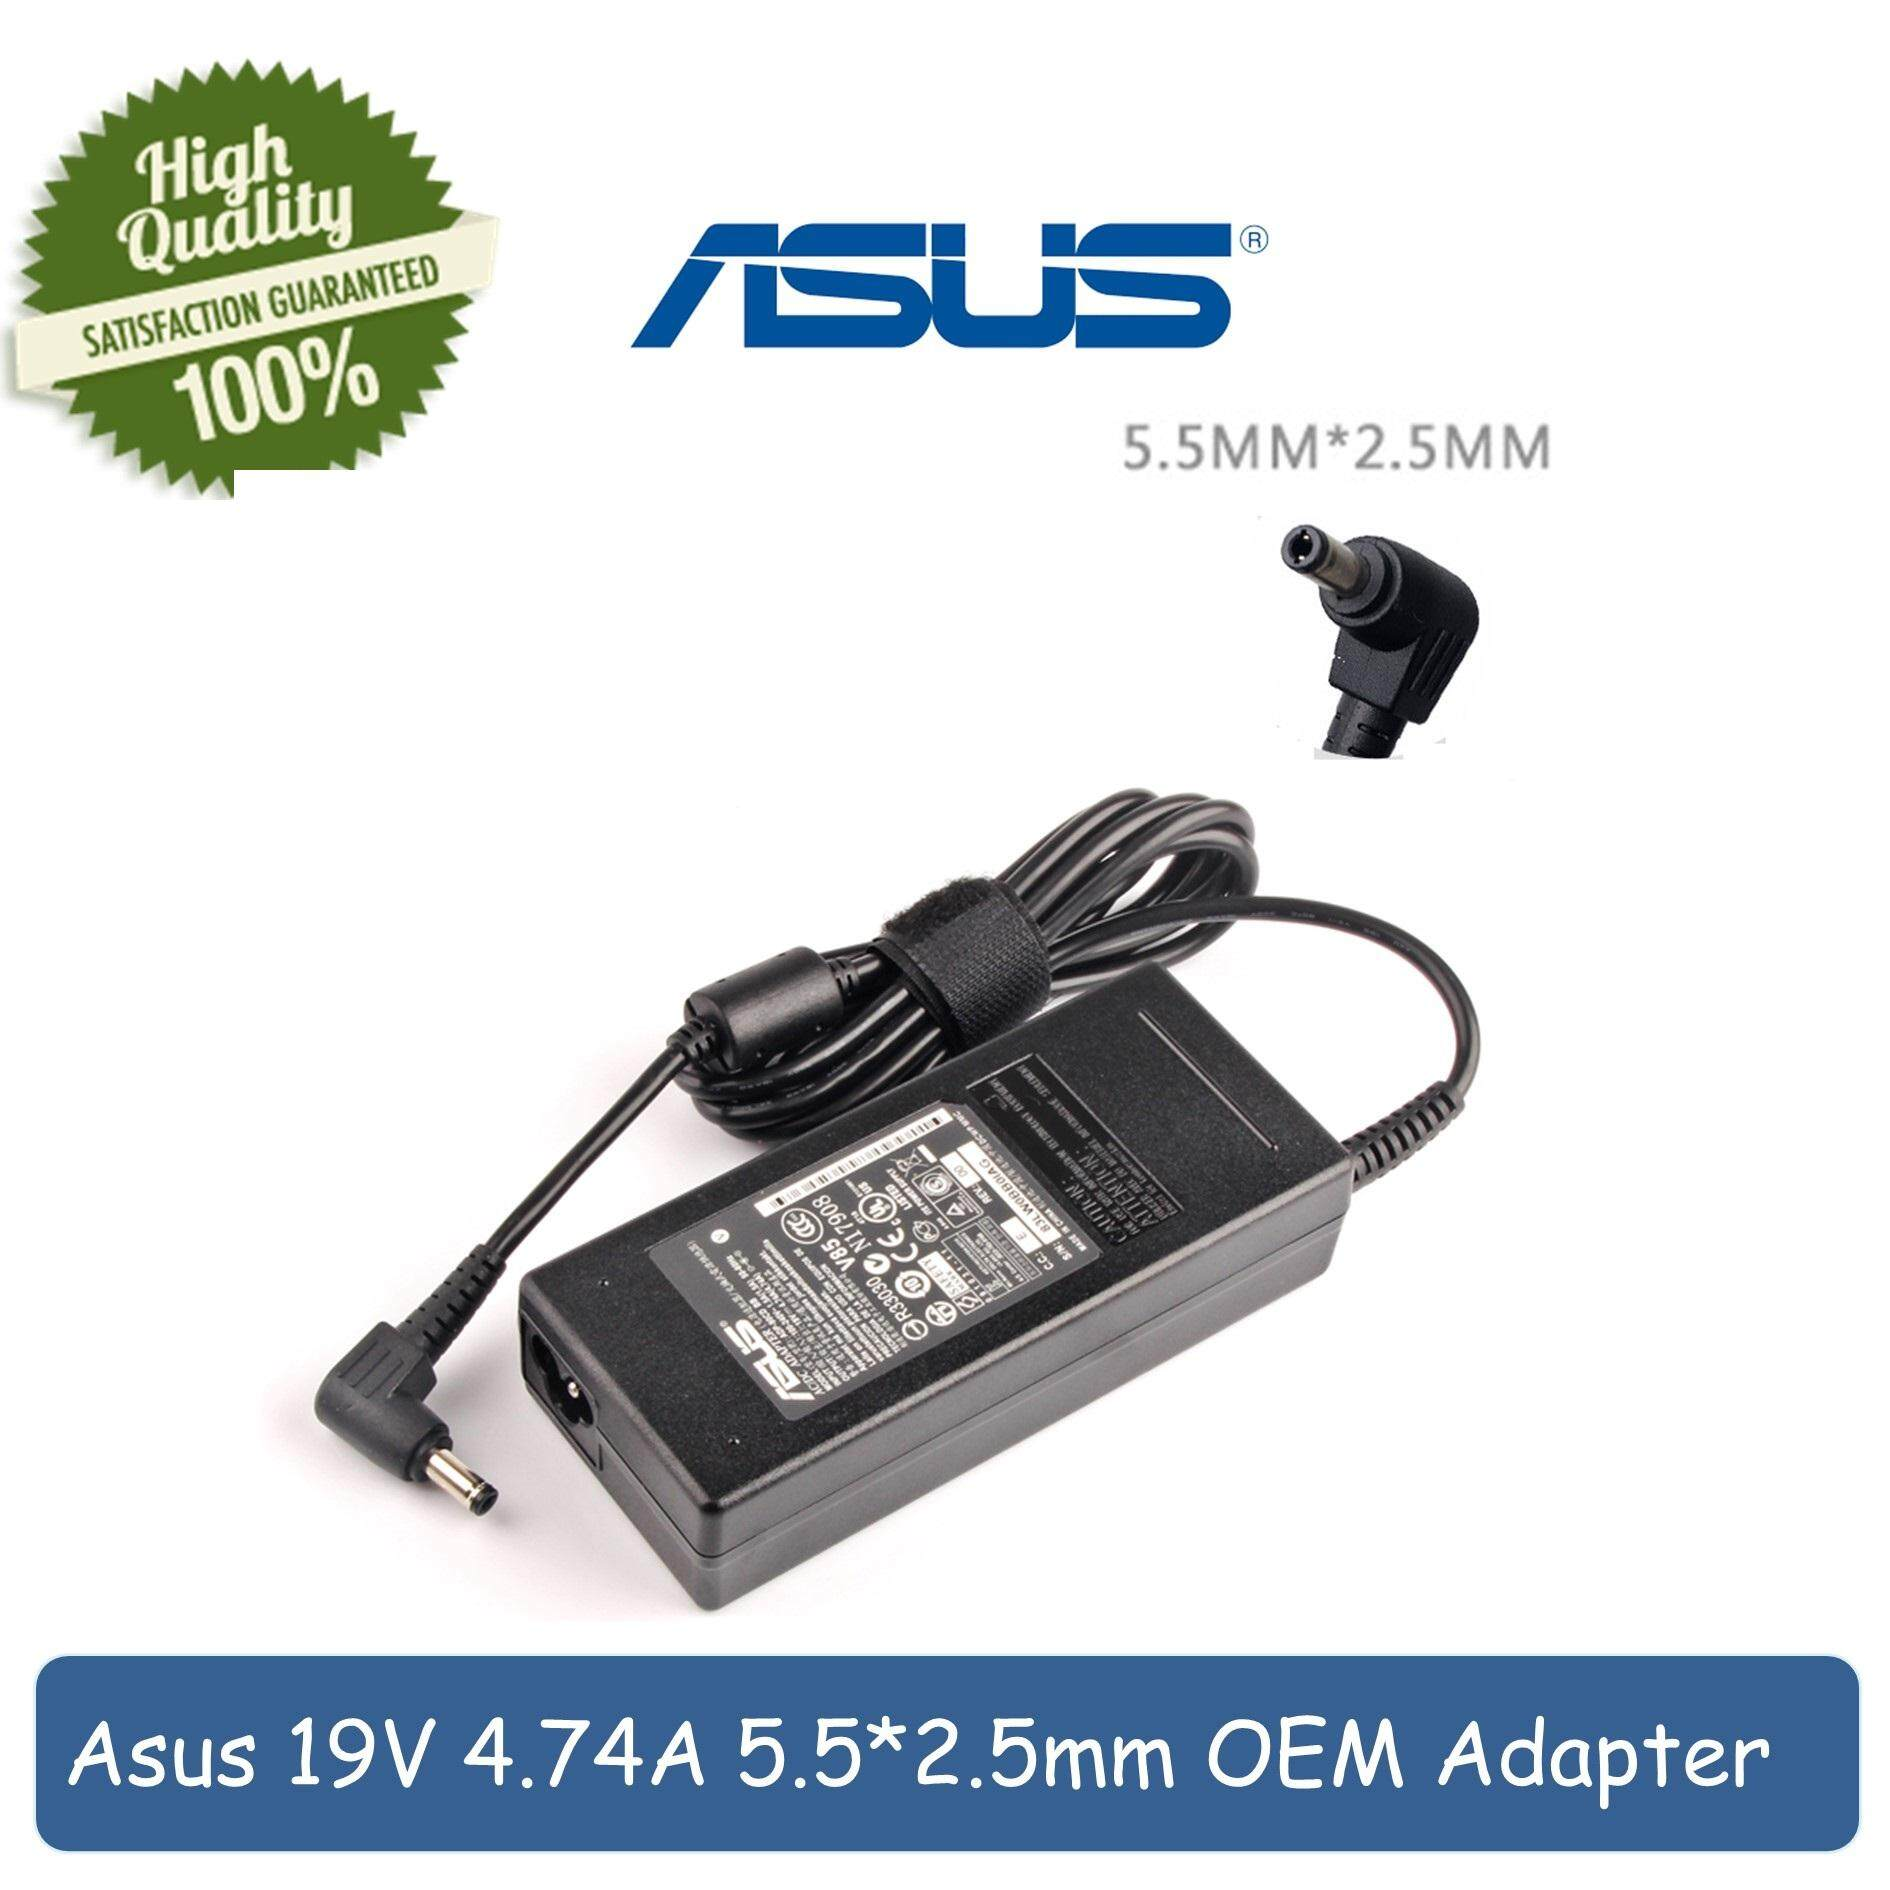 Asus computers laptops computer accessories price in malaysia asus 19v 474a 5525mm ac power supply notebook adapter charger for asus greentooth Choice Image